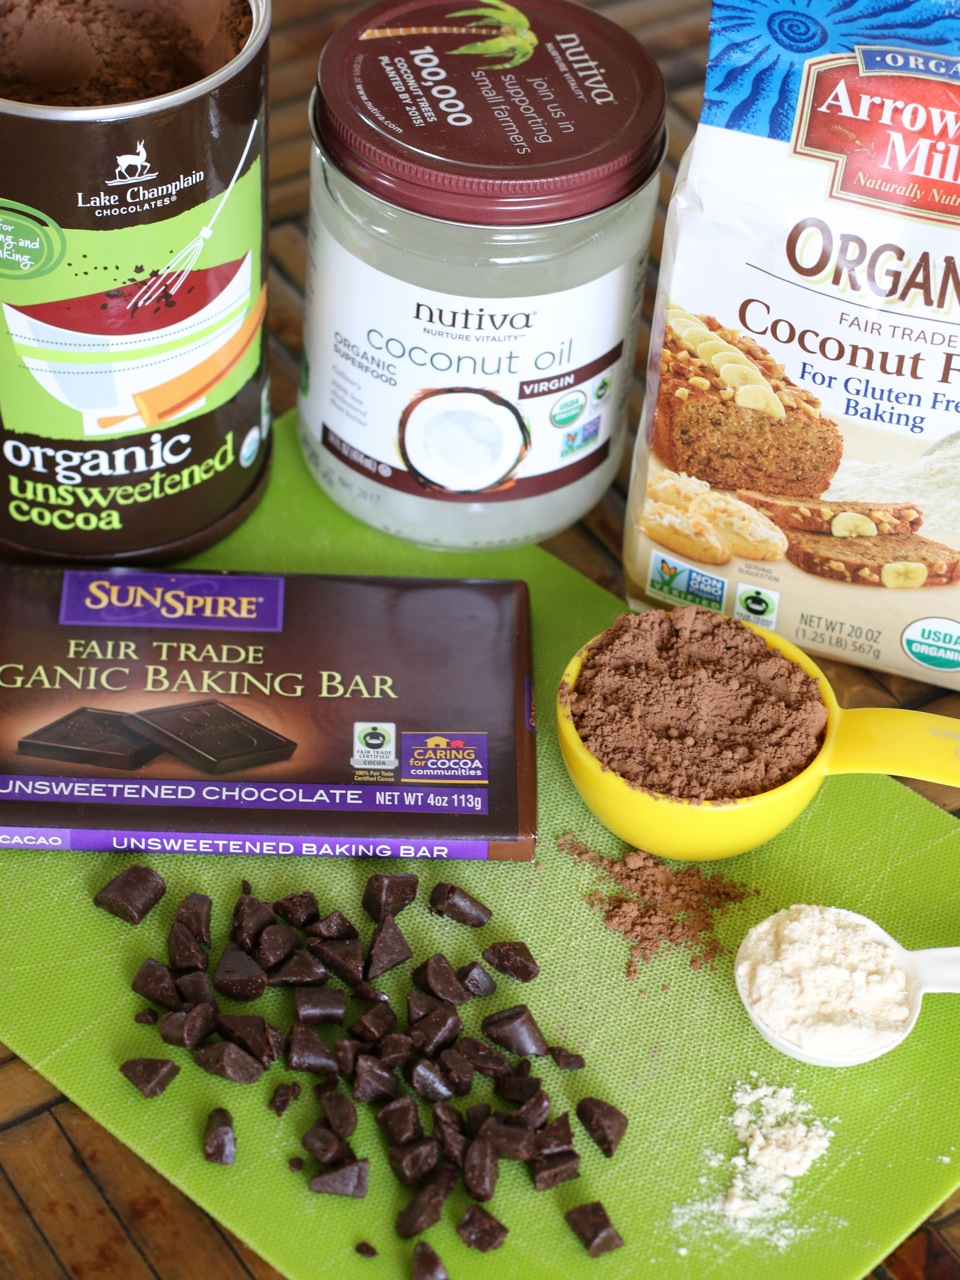 These irresistible Double Chocolate Banana Bars are made with pure fair-trade ingredients and are certain to become a family favorite!